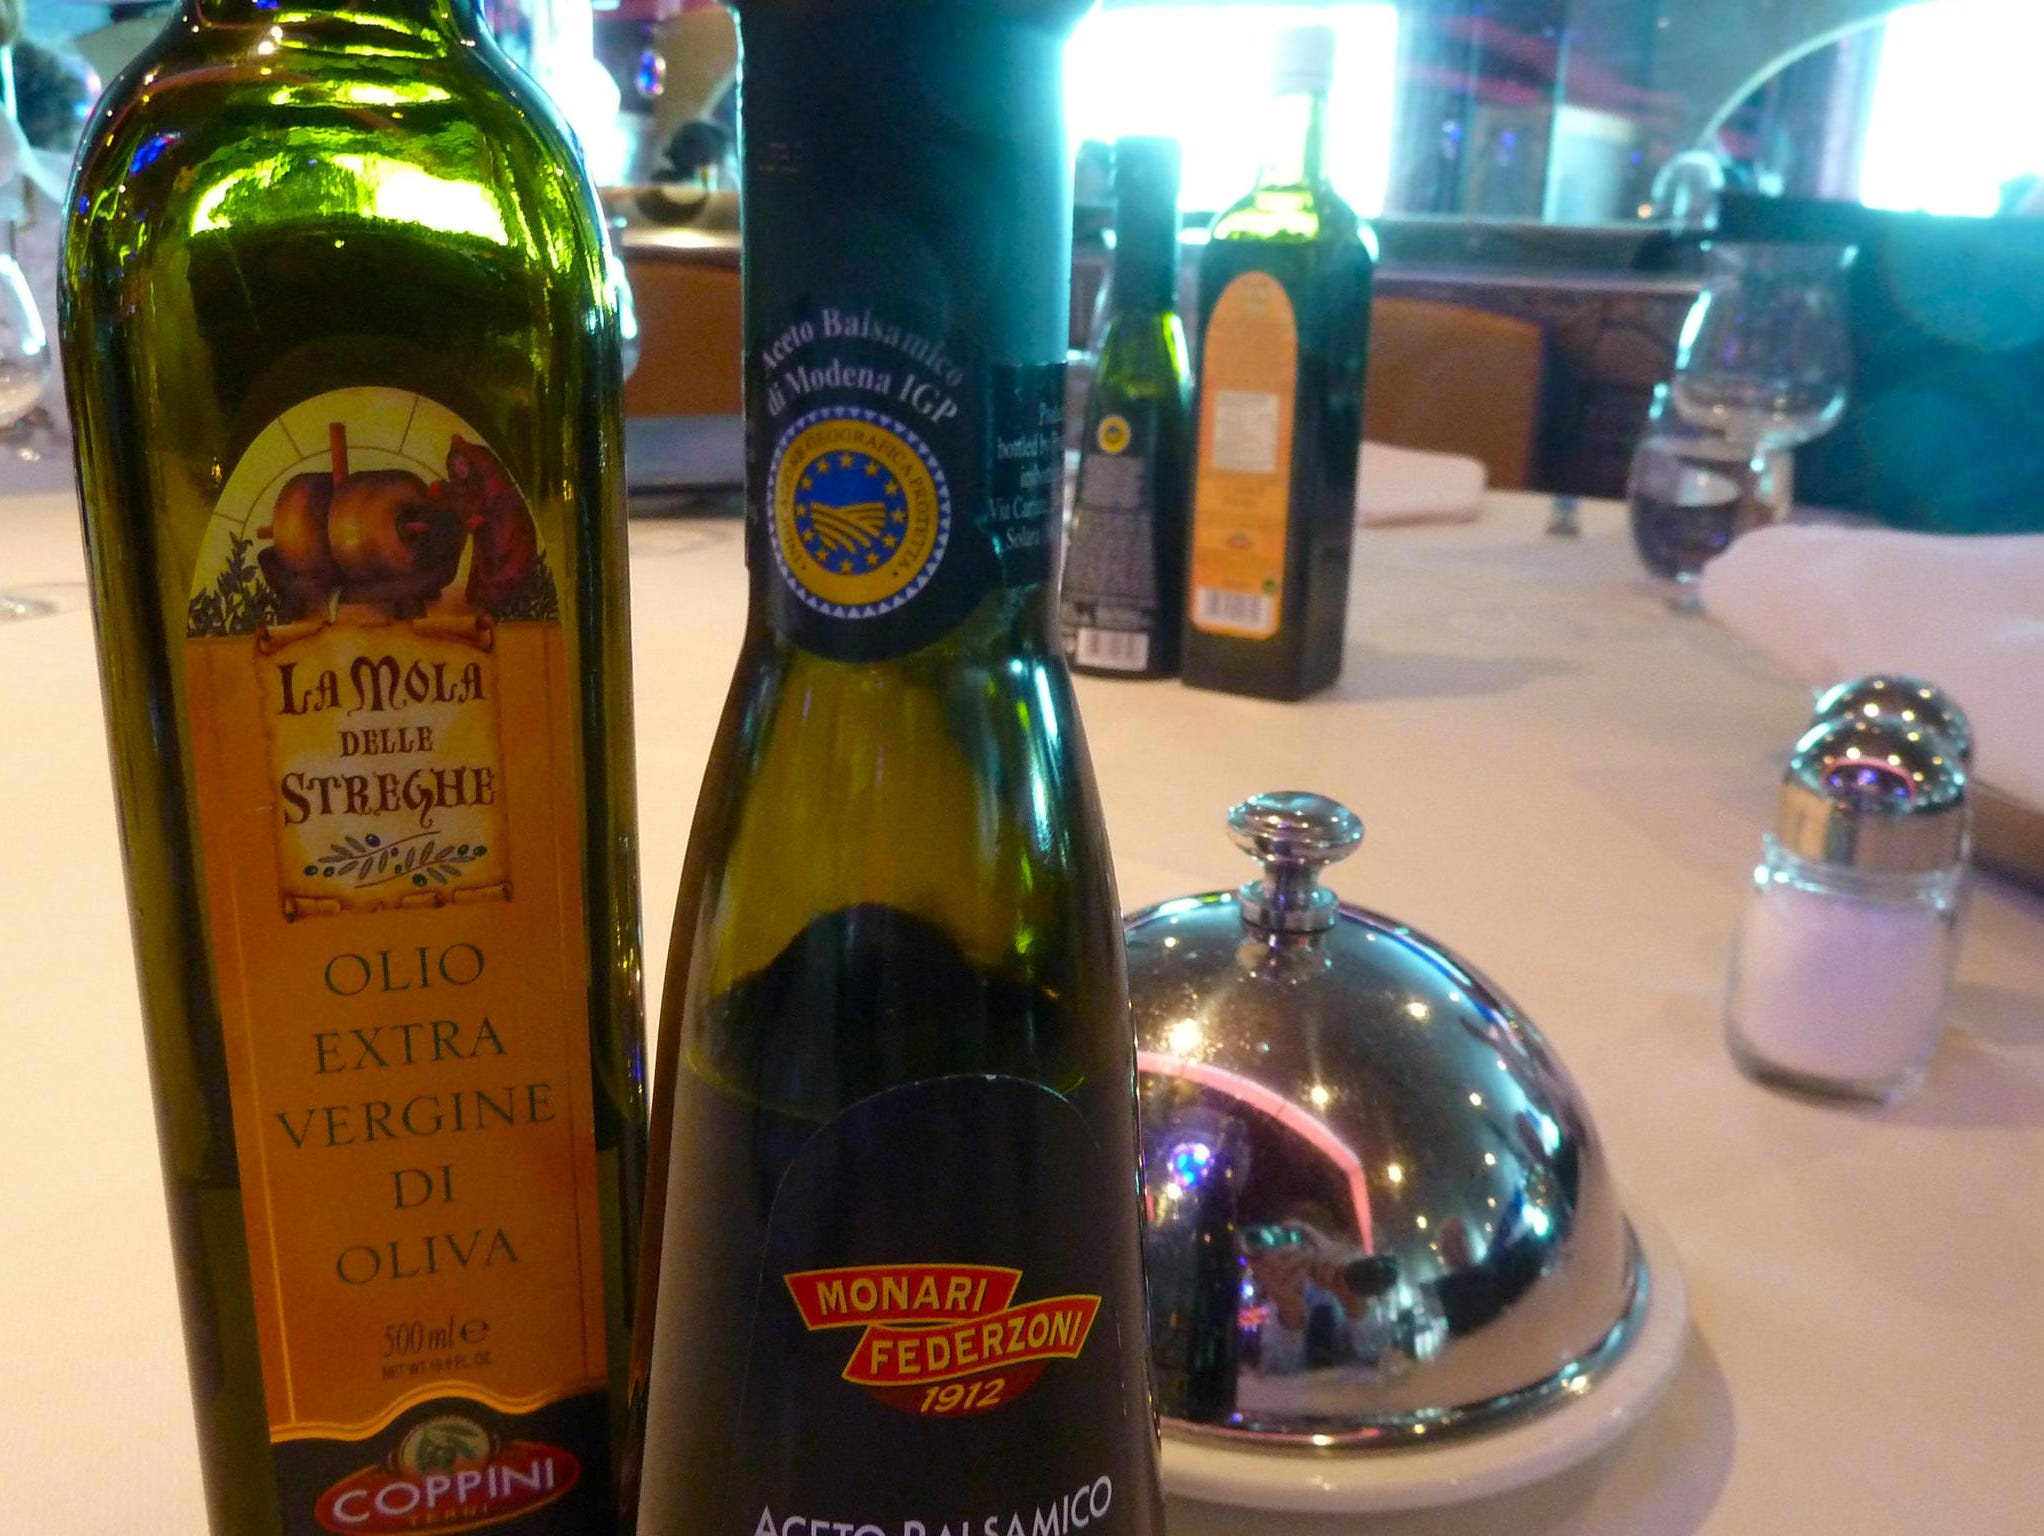 Extra-virgin olive oil and aged balsamic vinegar are always on hand to accompany the fresh-baked breads in the Restaurant Albatros.